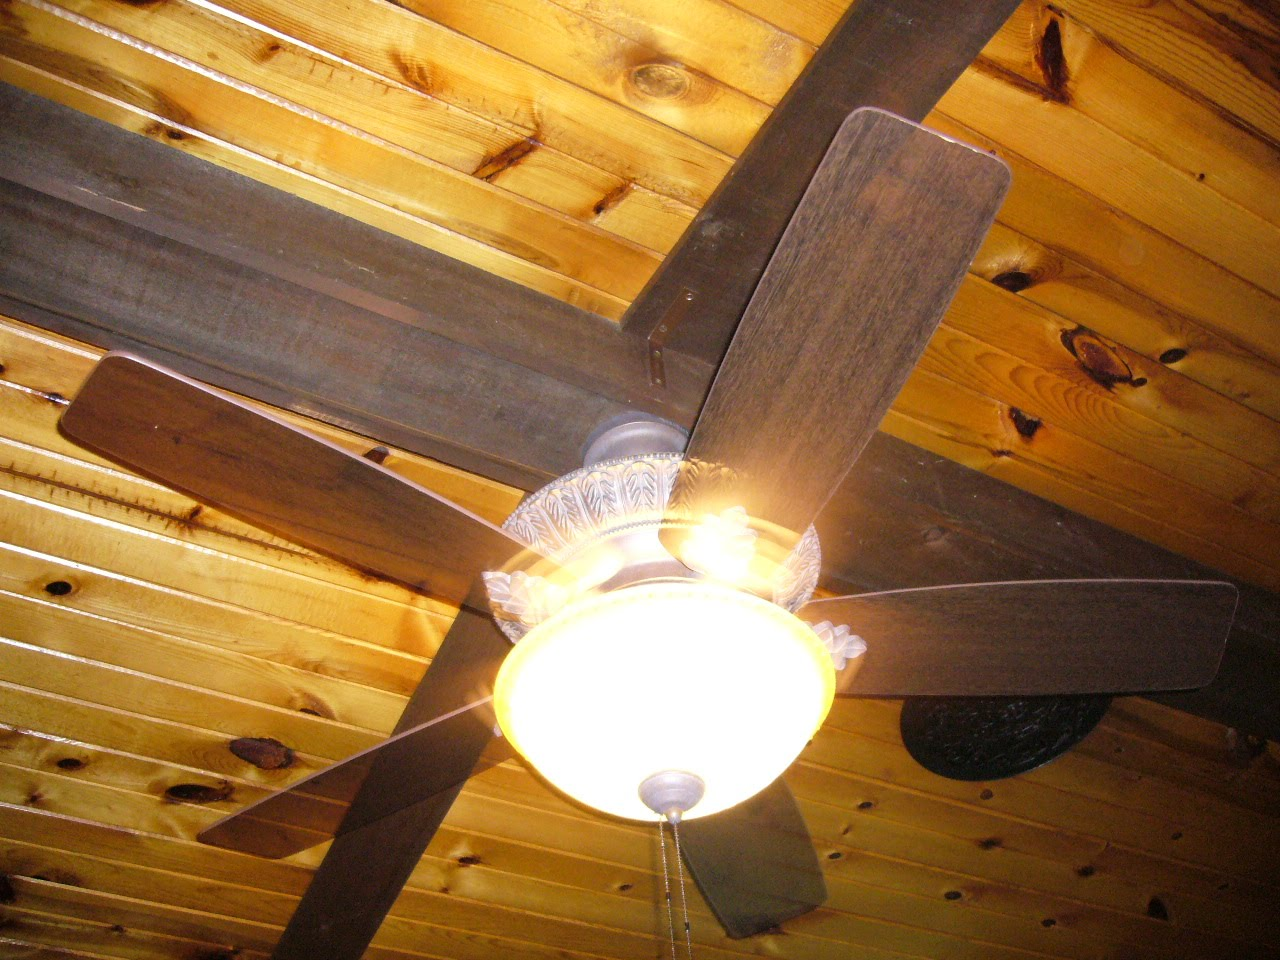 Crayola Ceiling Fan : Ditch diving mules micole and jason olgetree